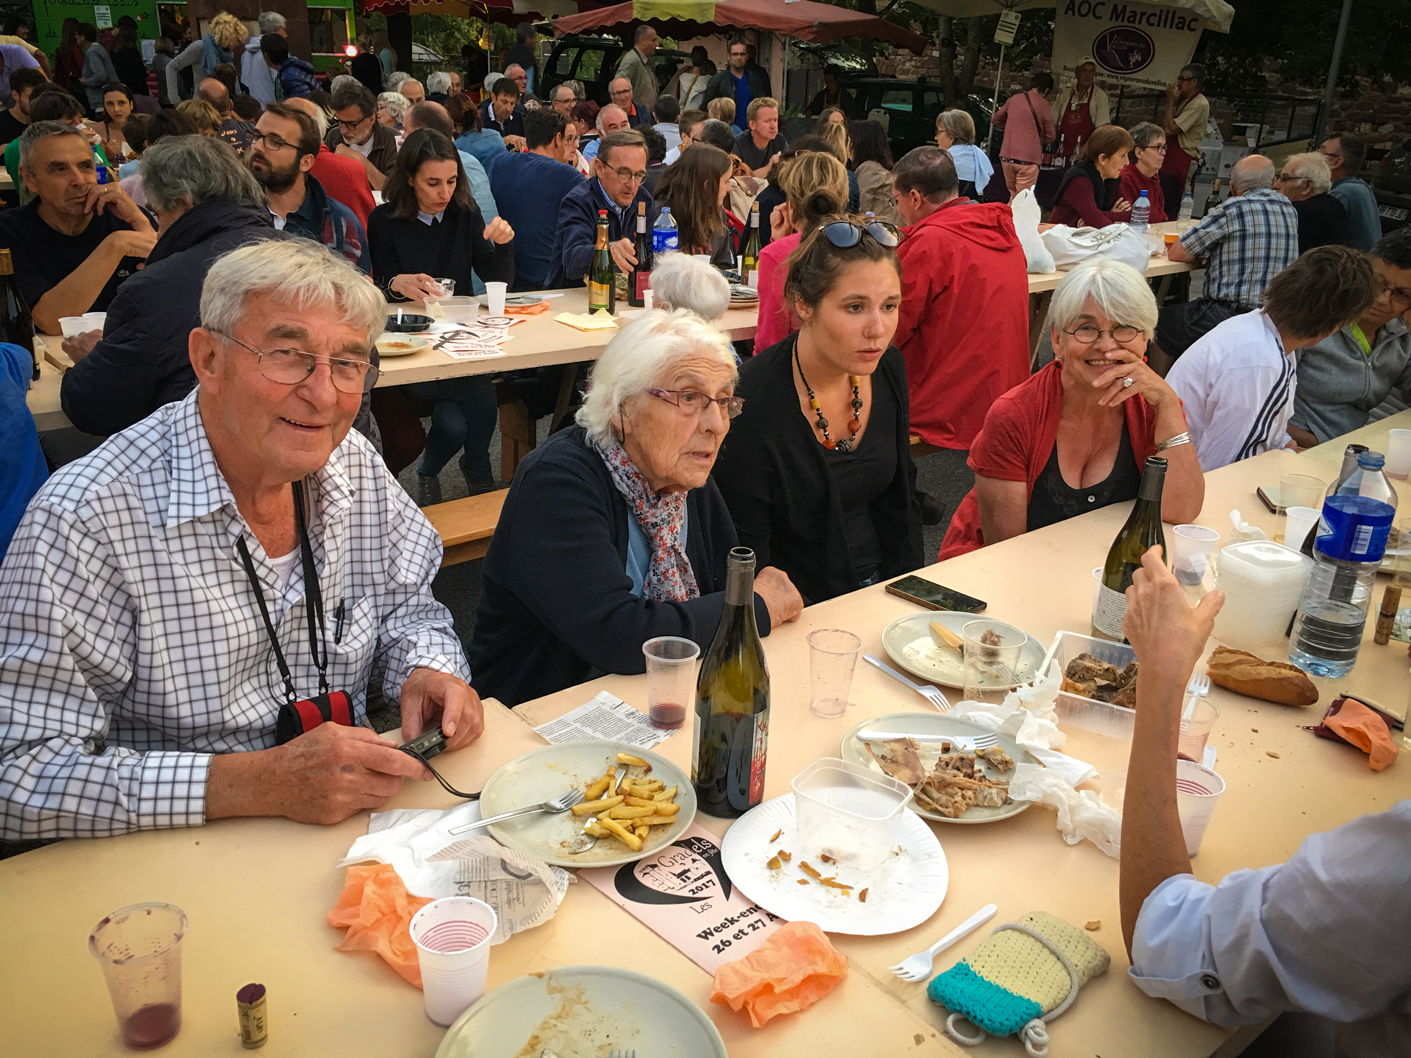 Gerry having dinner and fun at Valady's marché gourmand. On Gerry's left are Suzanne (Véronique's aunt), Héloise (a great cousin), Elizabeth (one of Véronique's cousin), as well as lots of locals having great times. Véronique is across the table.